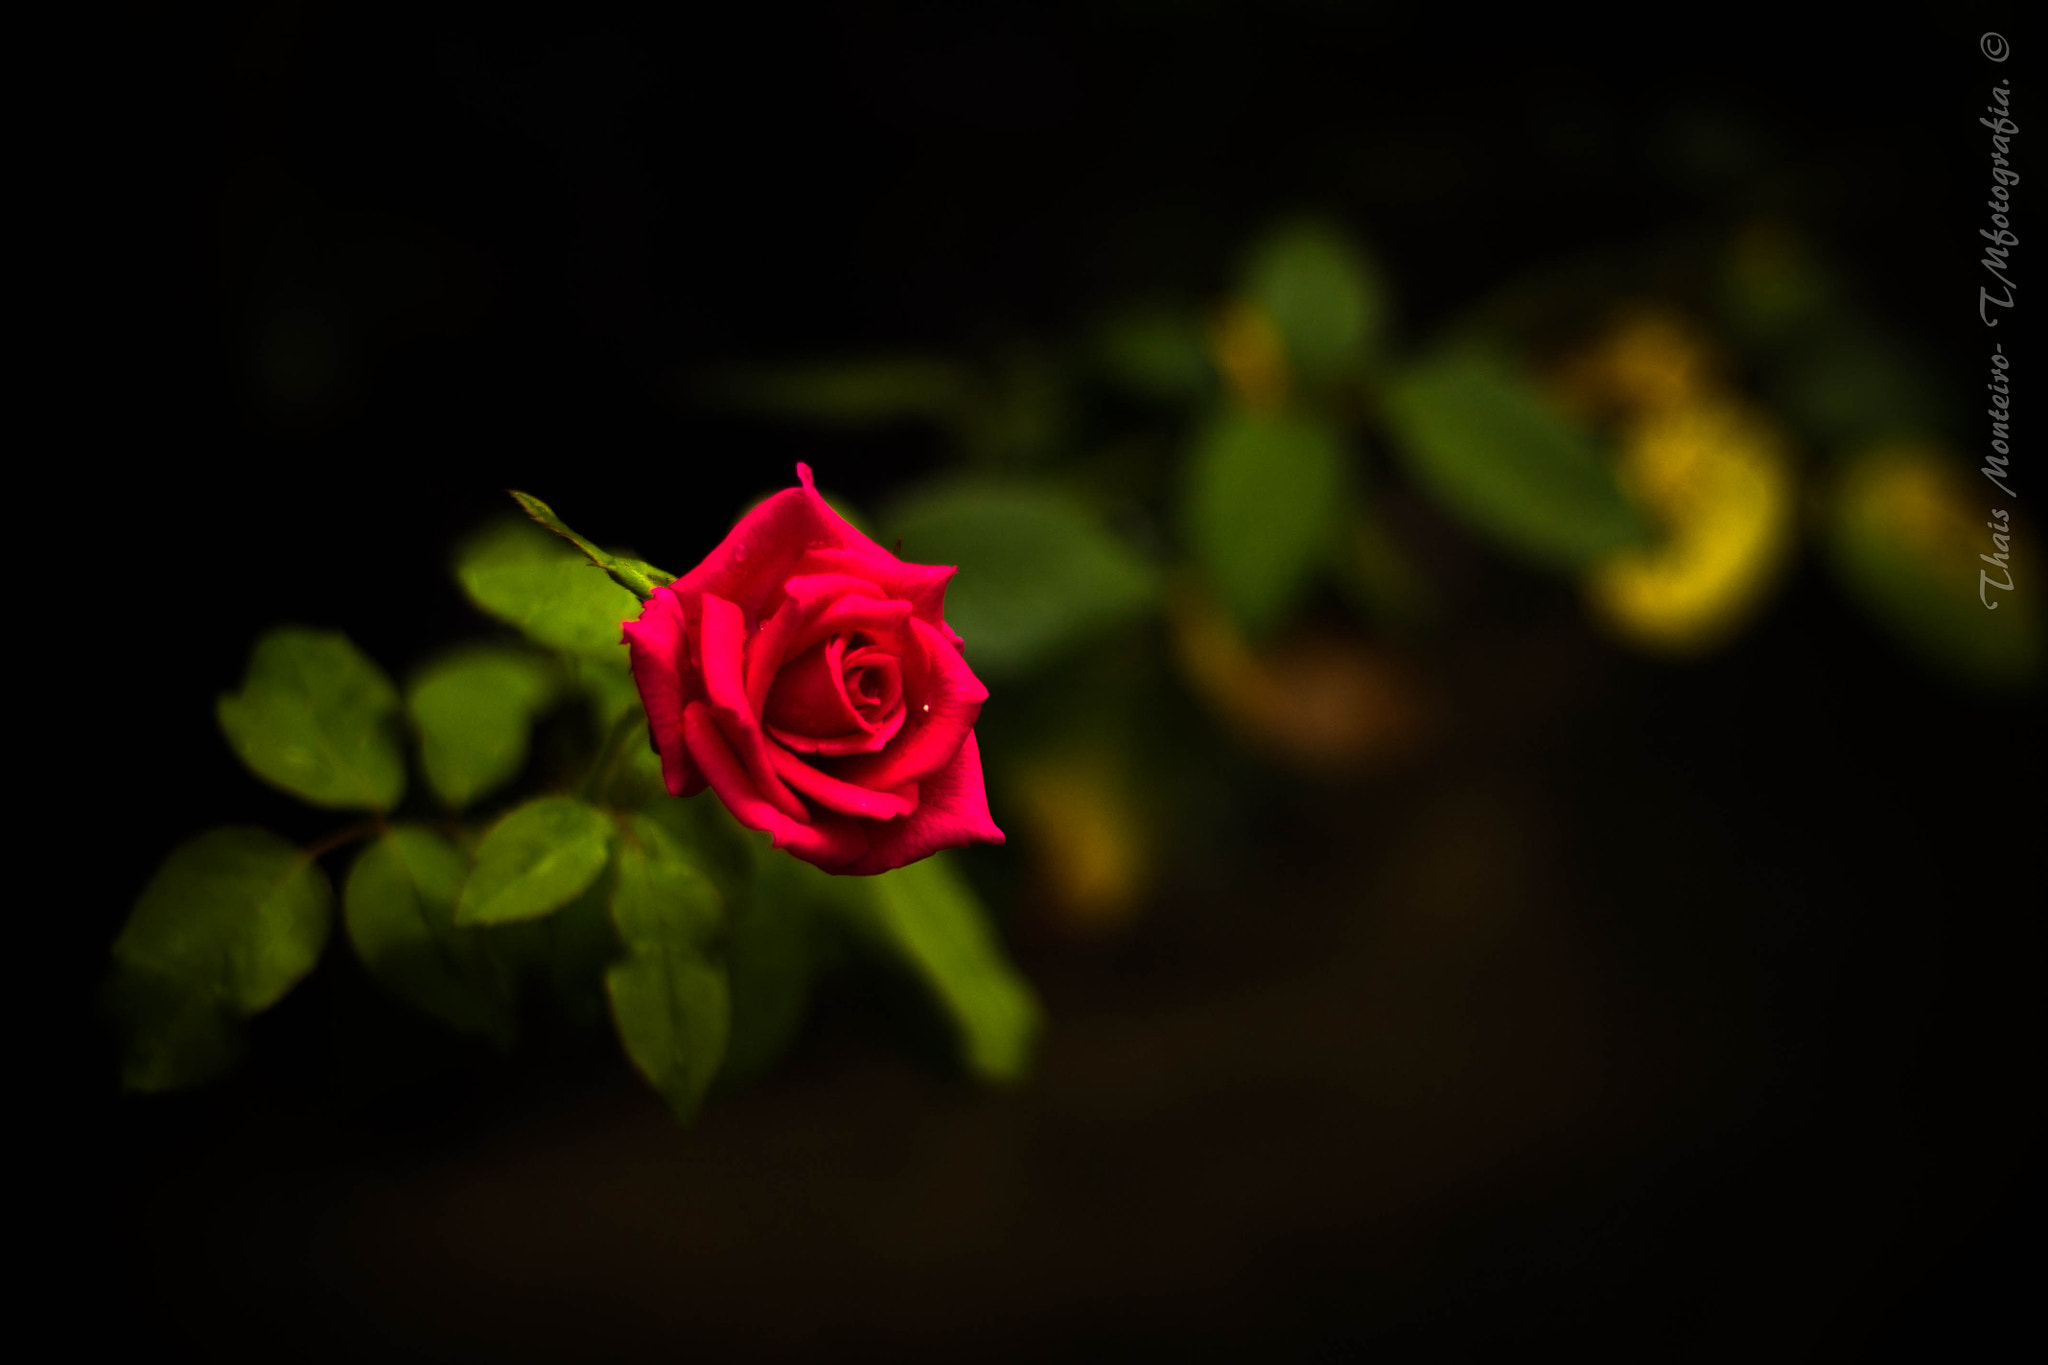 Photograph The flower by Thais Monteiro on 500px